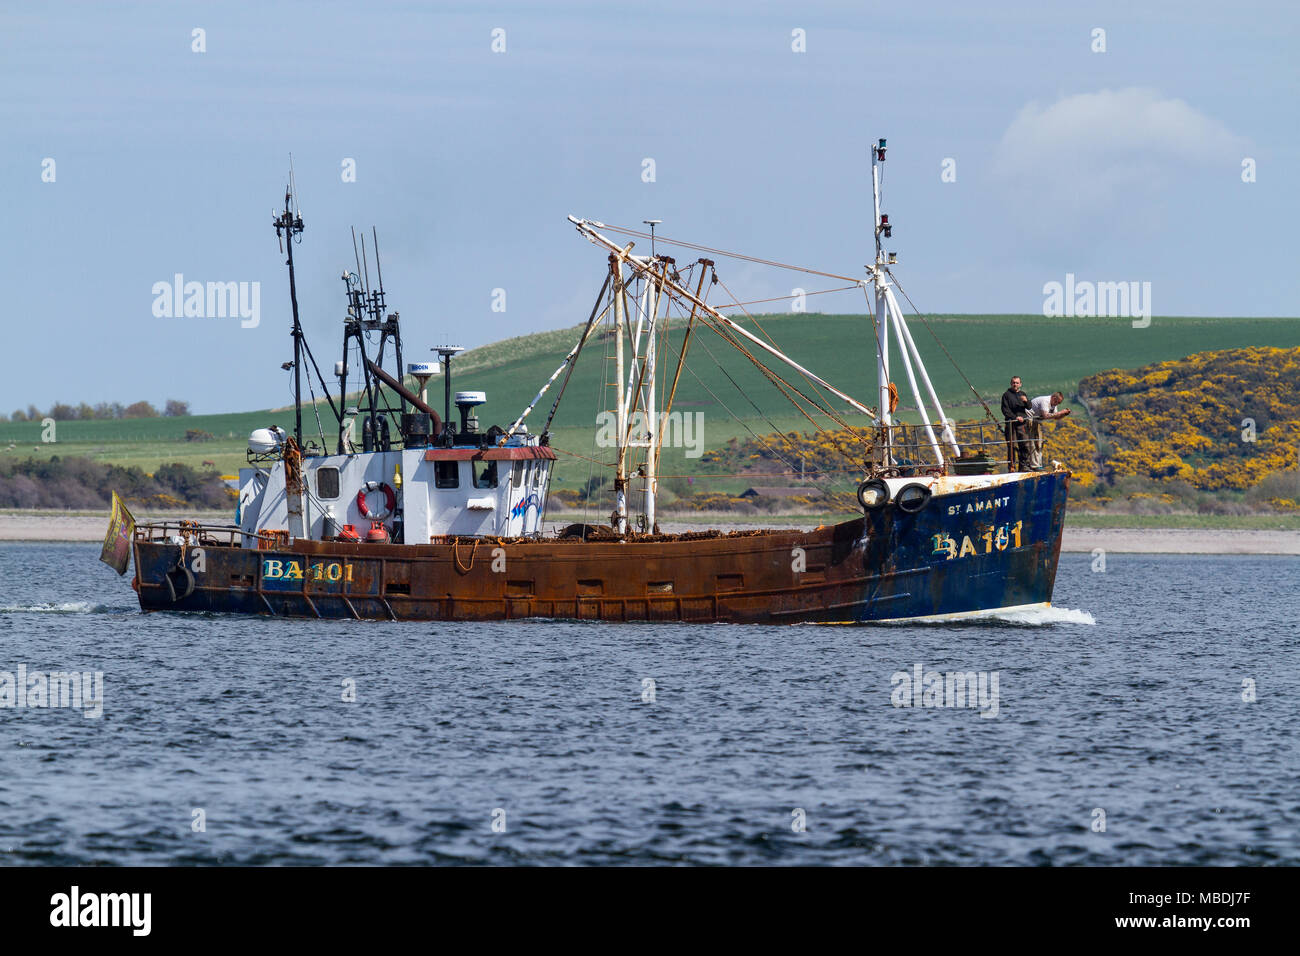 Fishing boat in the Moray Firth heading towards Inverness. Taken from Chanonry Point on the Black Isle, Scotland. - Stock Image